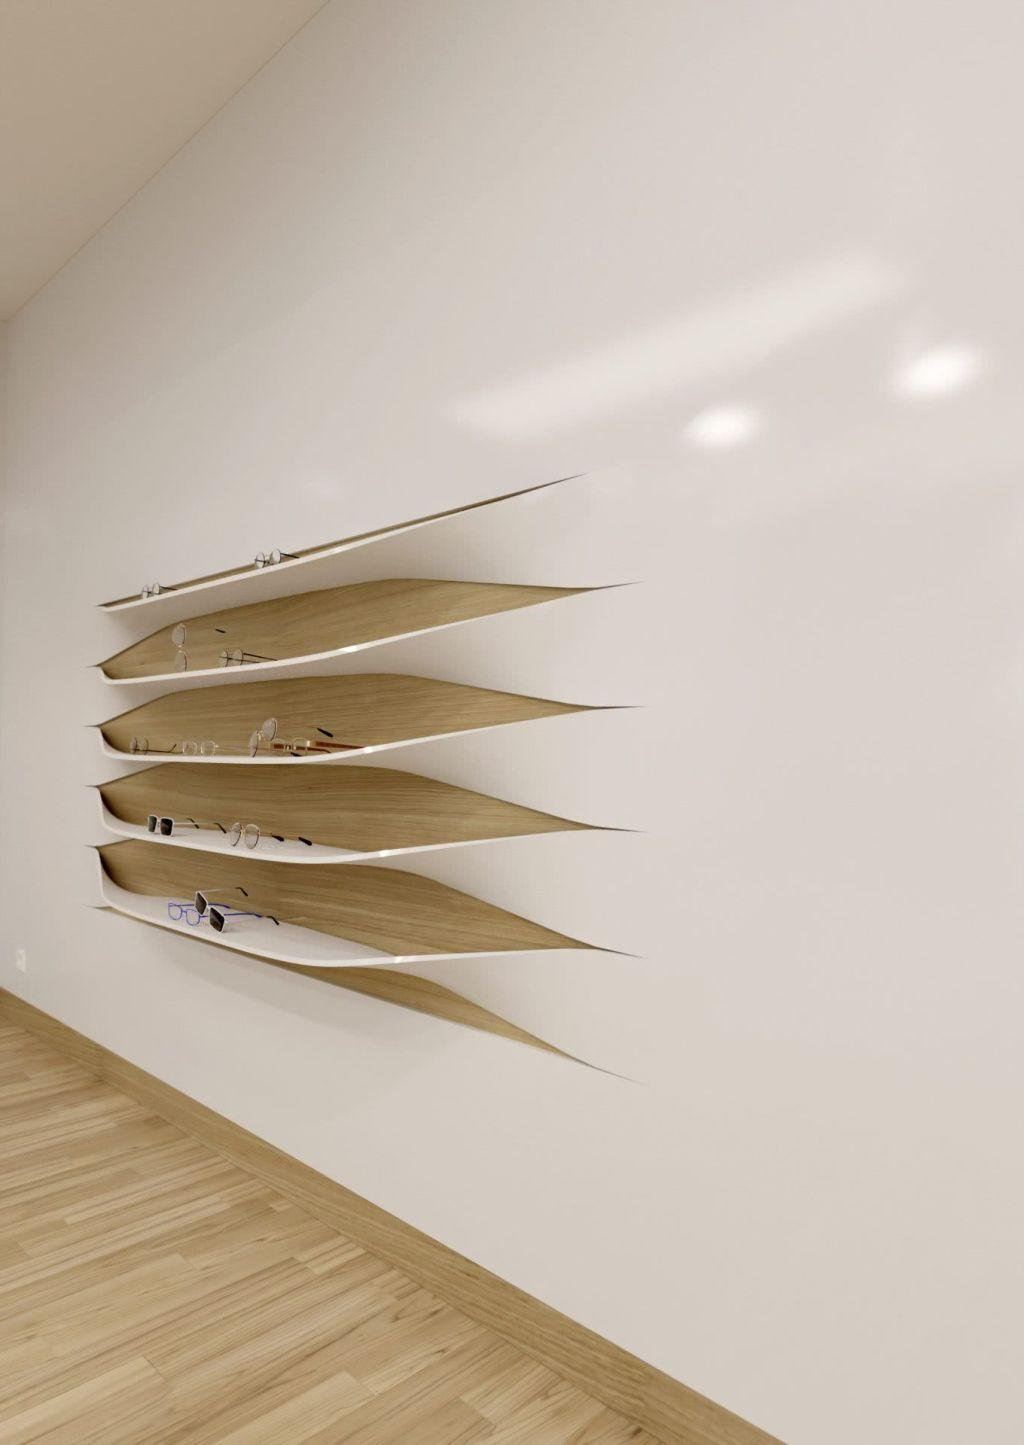 Creative Shelves: 60 Modern and Inspiring Solutions 3